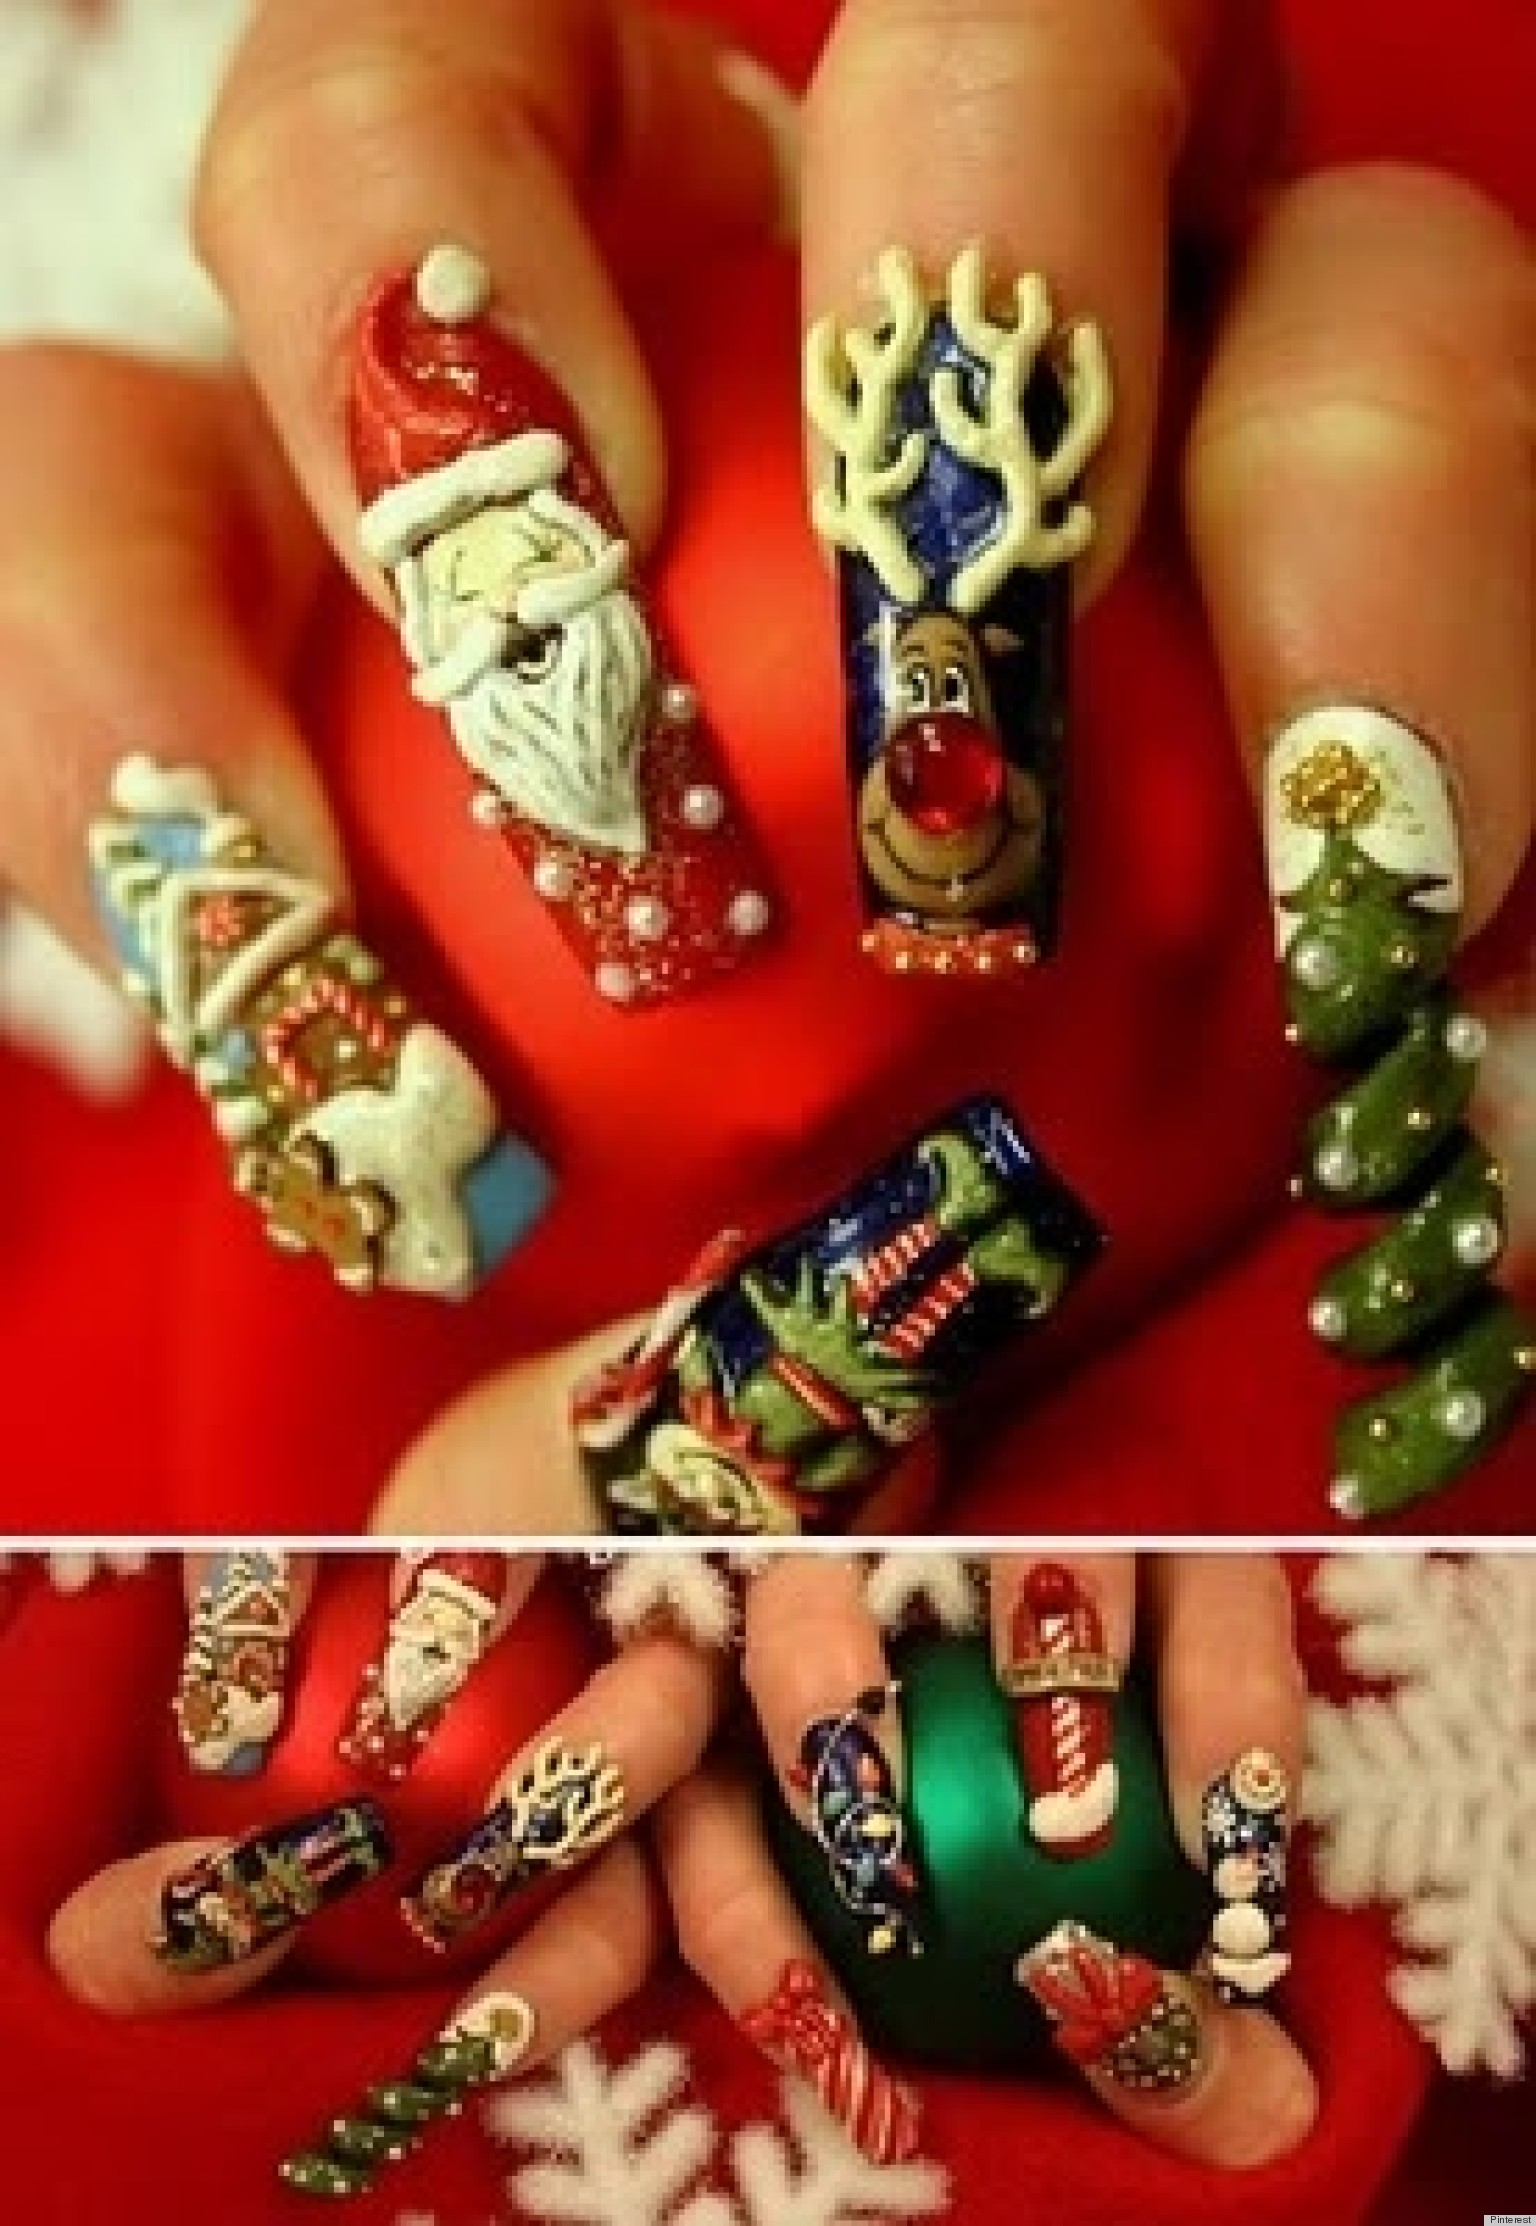 Christmas Nail Art: Santa Claus, Rudolph The Red-Nosed Reindeer And More Holiday Manicures